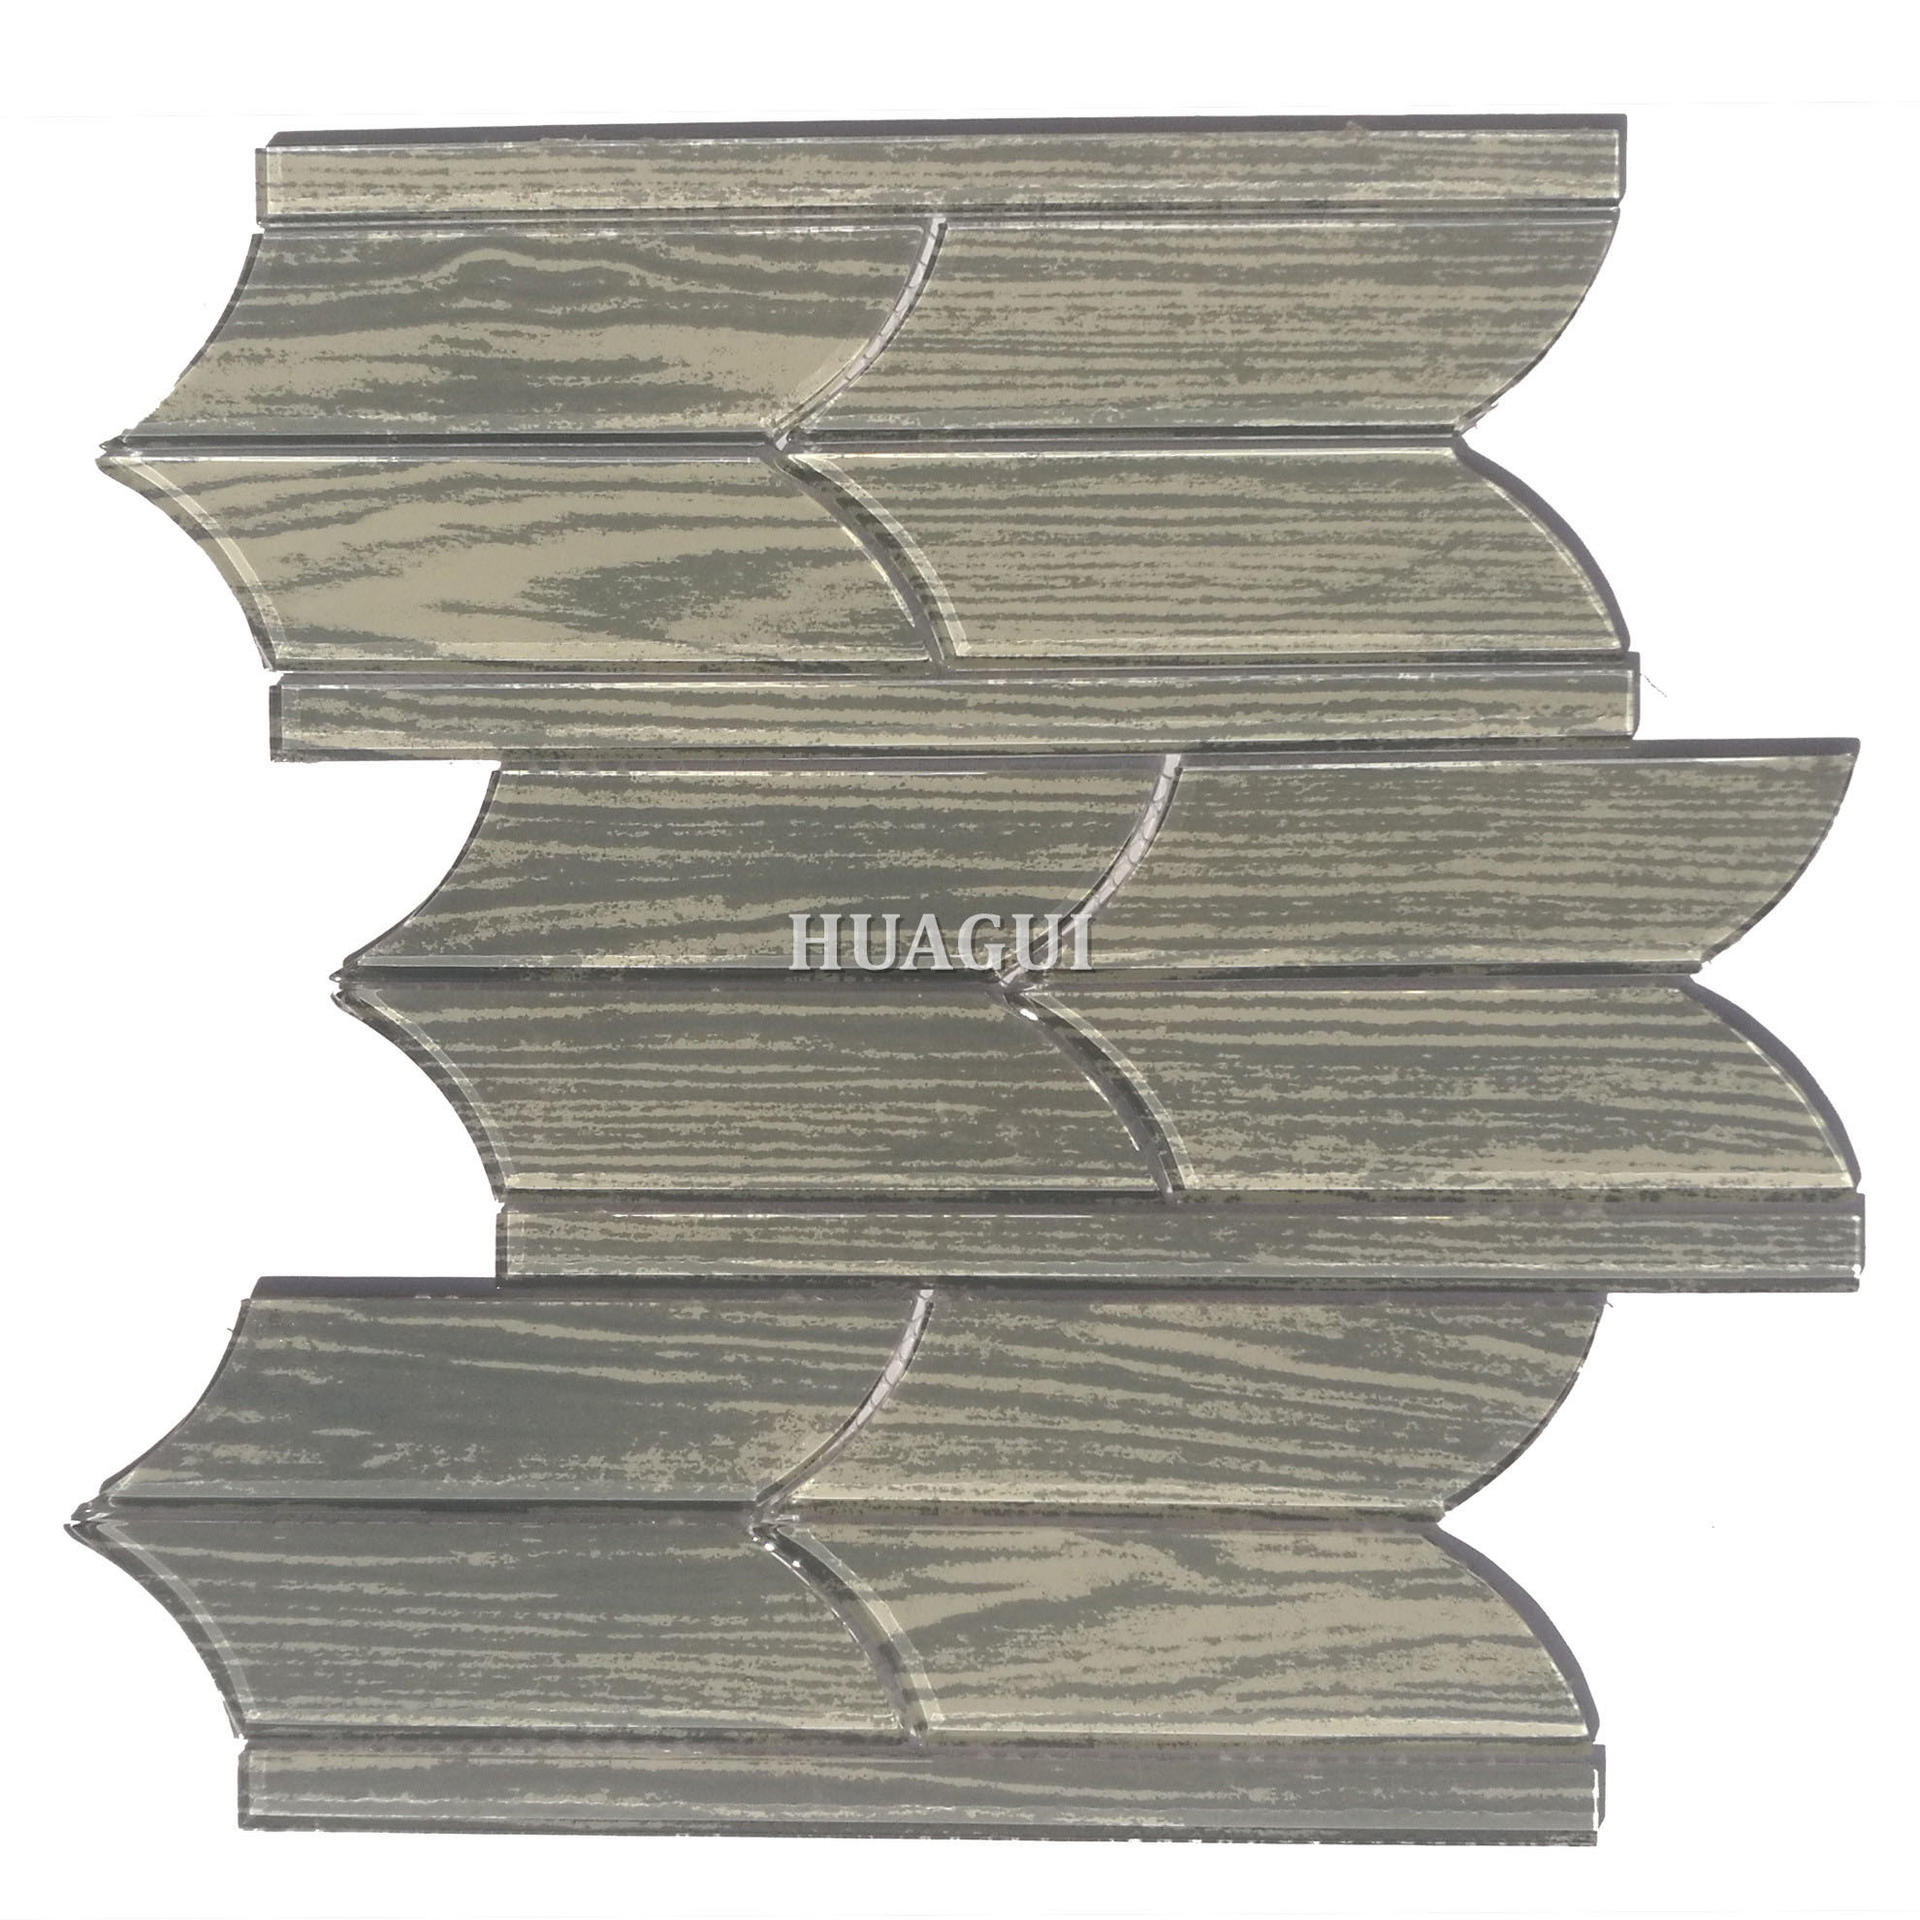 Polished tile of irregular grey glass mosaic backsplash